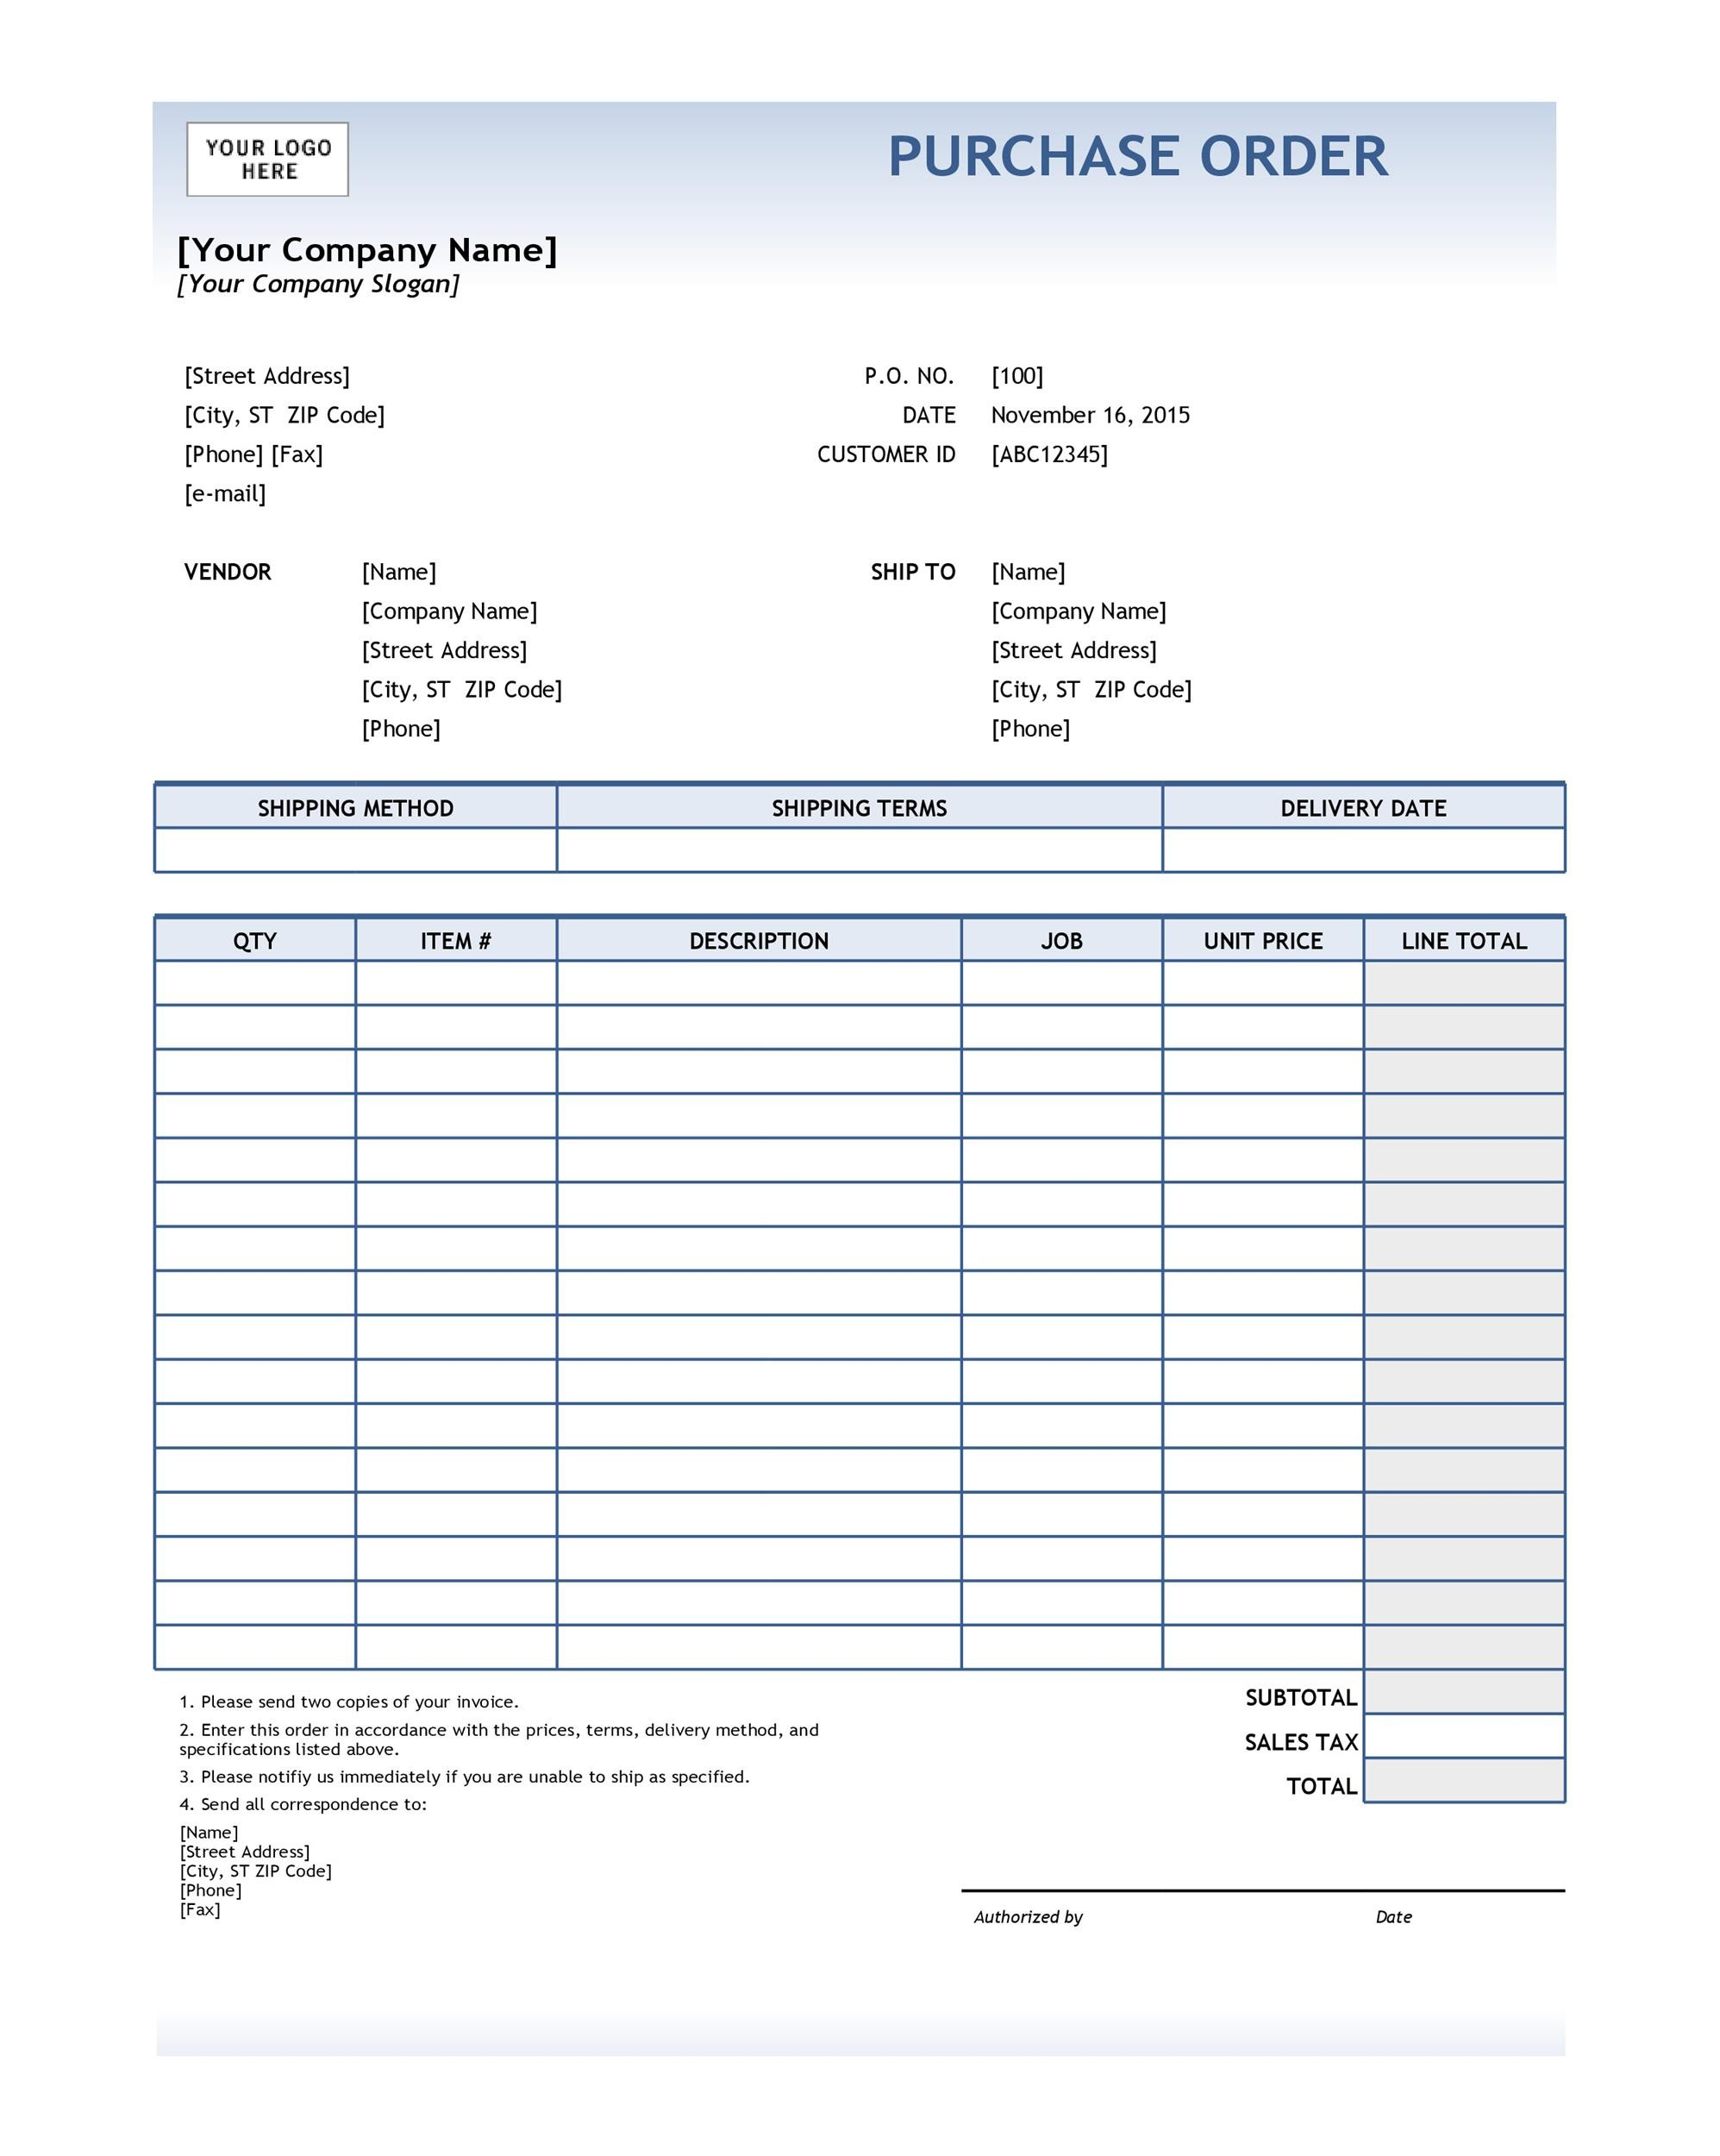 Free Purchase Order Templates In Word Excel - Free invoice template for word 2010 dress stores online